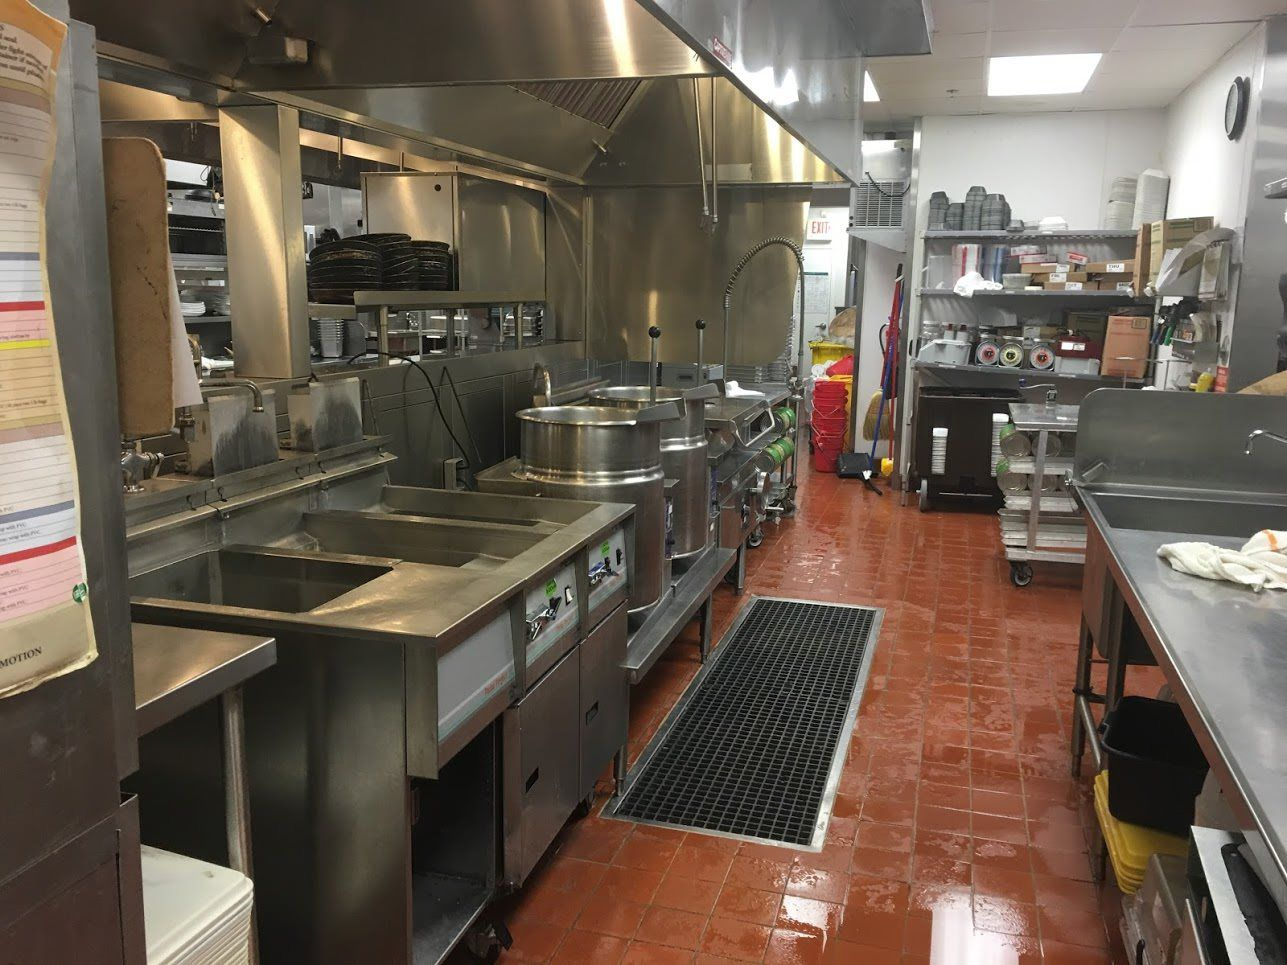 kitchen deep cleaning services leading edge services inc commercial kitchens and food preparation areas must adhere to stringent legislation governing their condition and hygiene standards